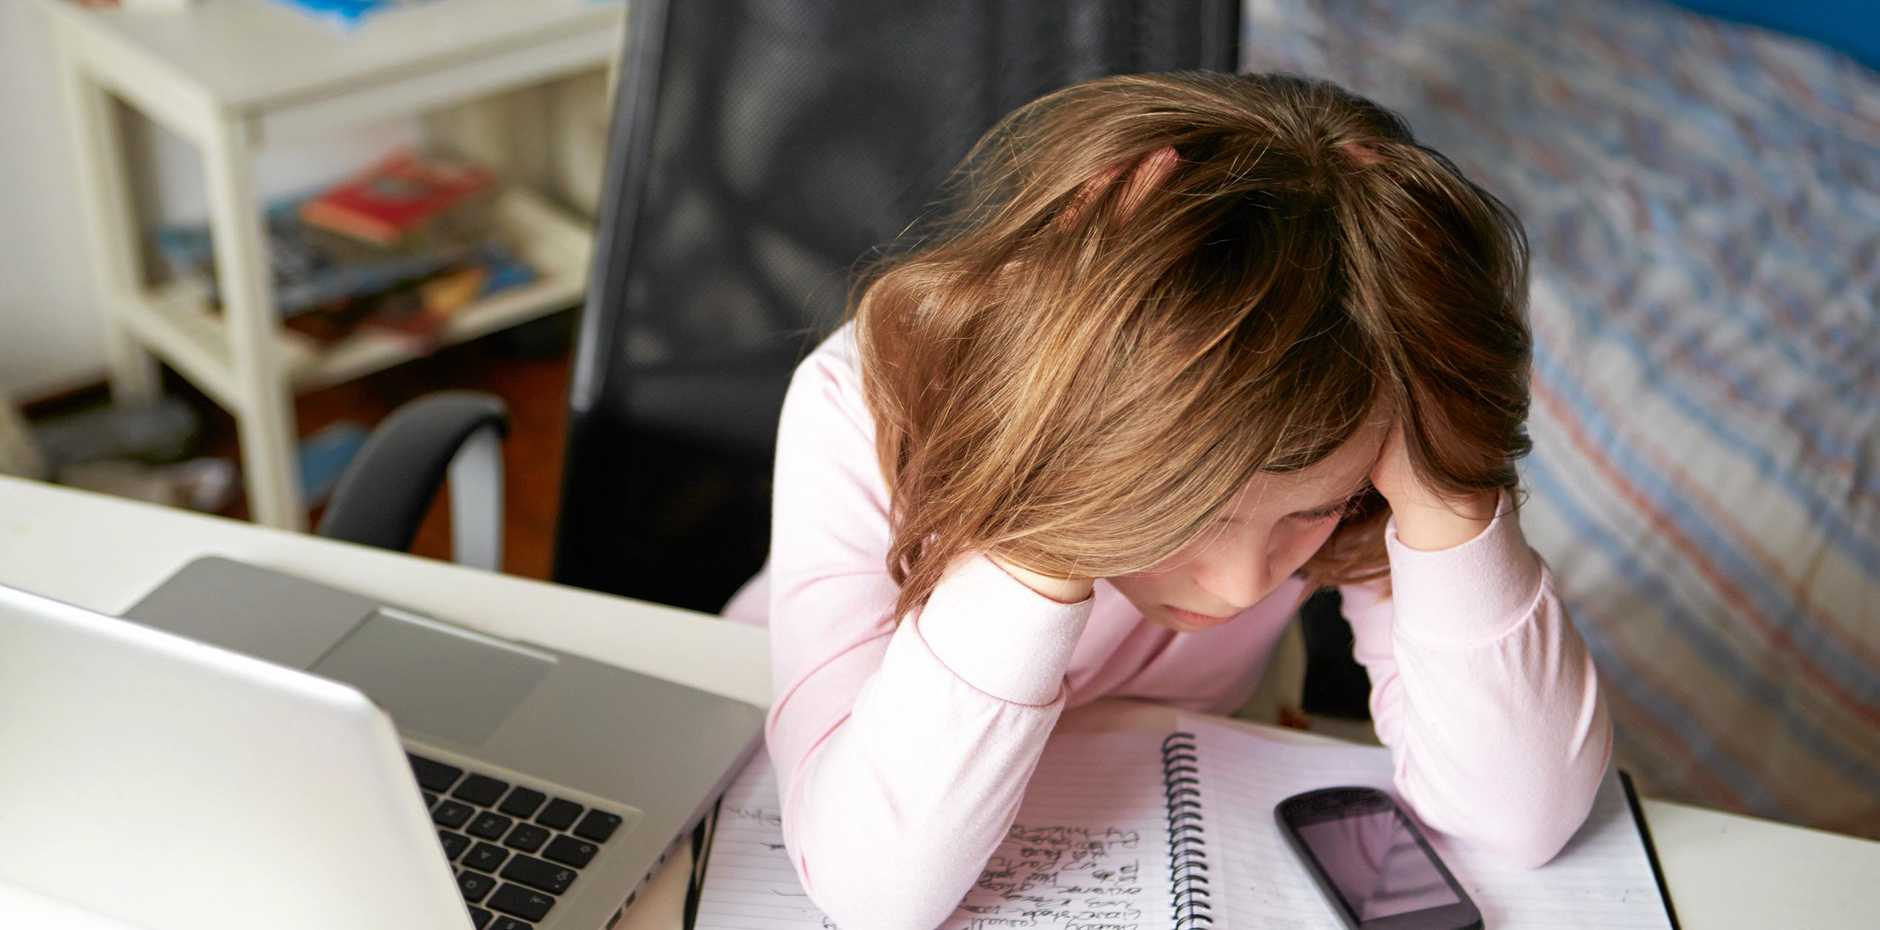 Cyberbullying is a growing problem.